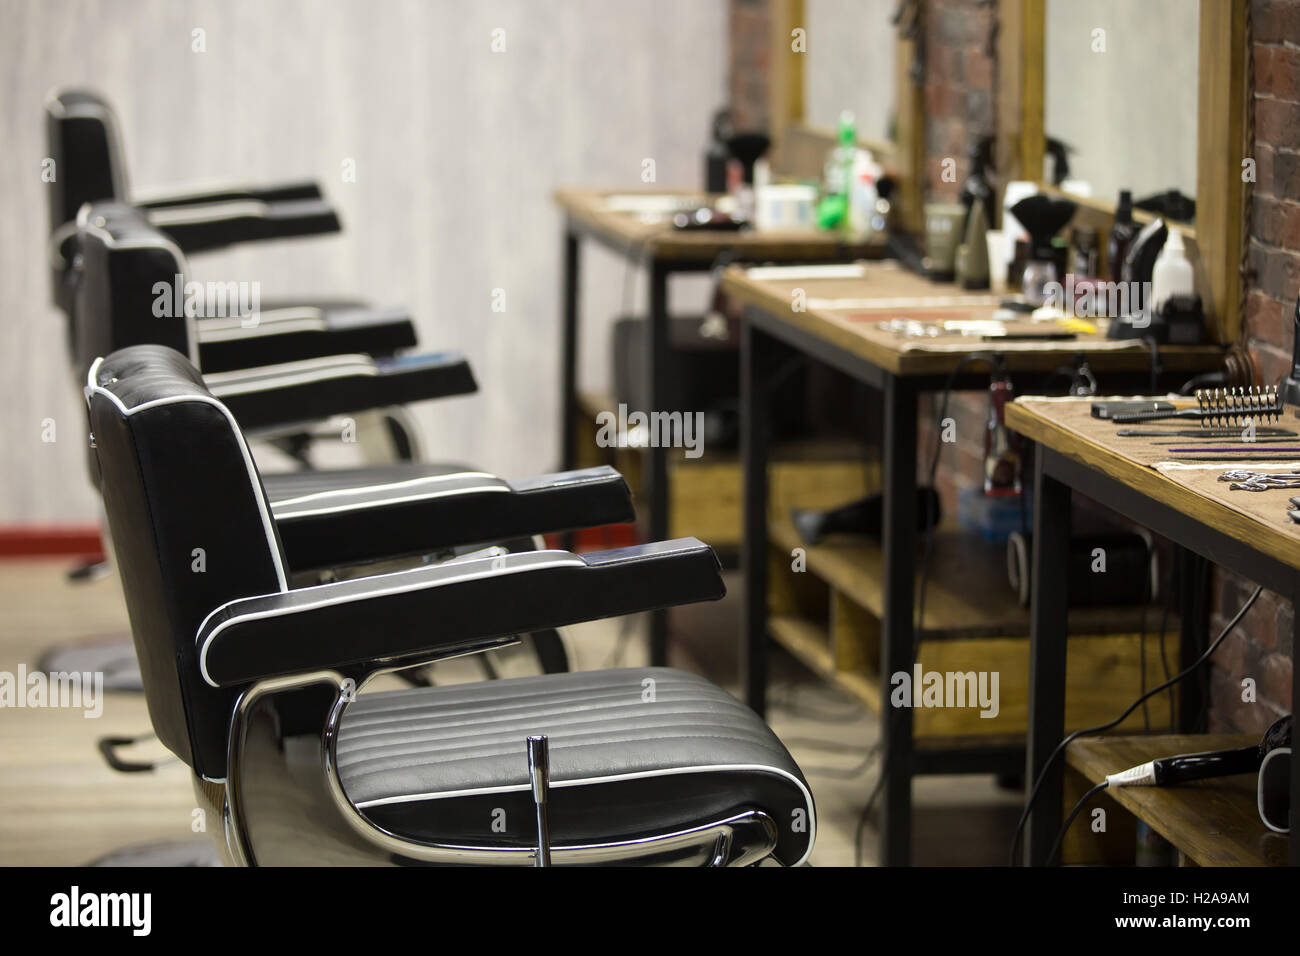 Row Of Black Leather Chairs In Modern Barber Shop Interior. Horizontal  Indoors Shot